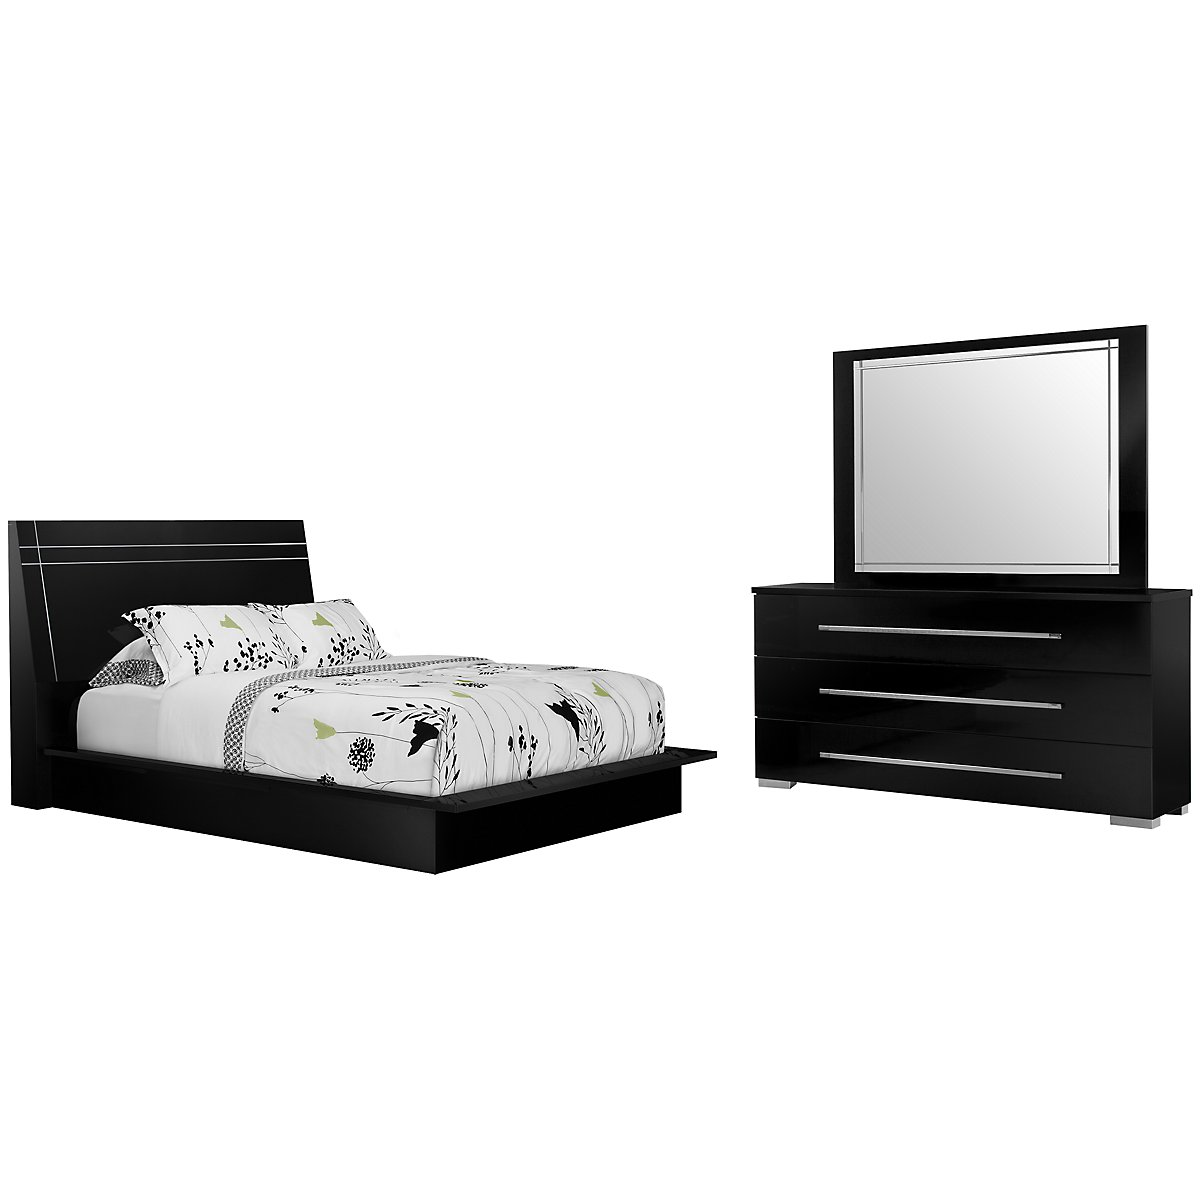 city furniture bedroom set. Dimora3 Black Wood Platform Bedroom City Furniture